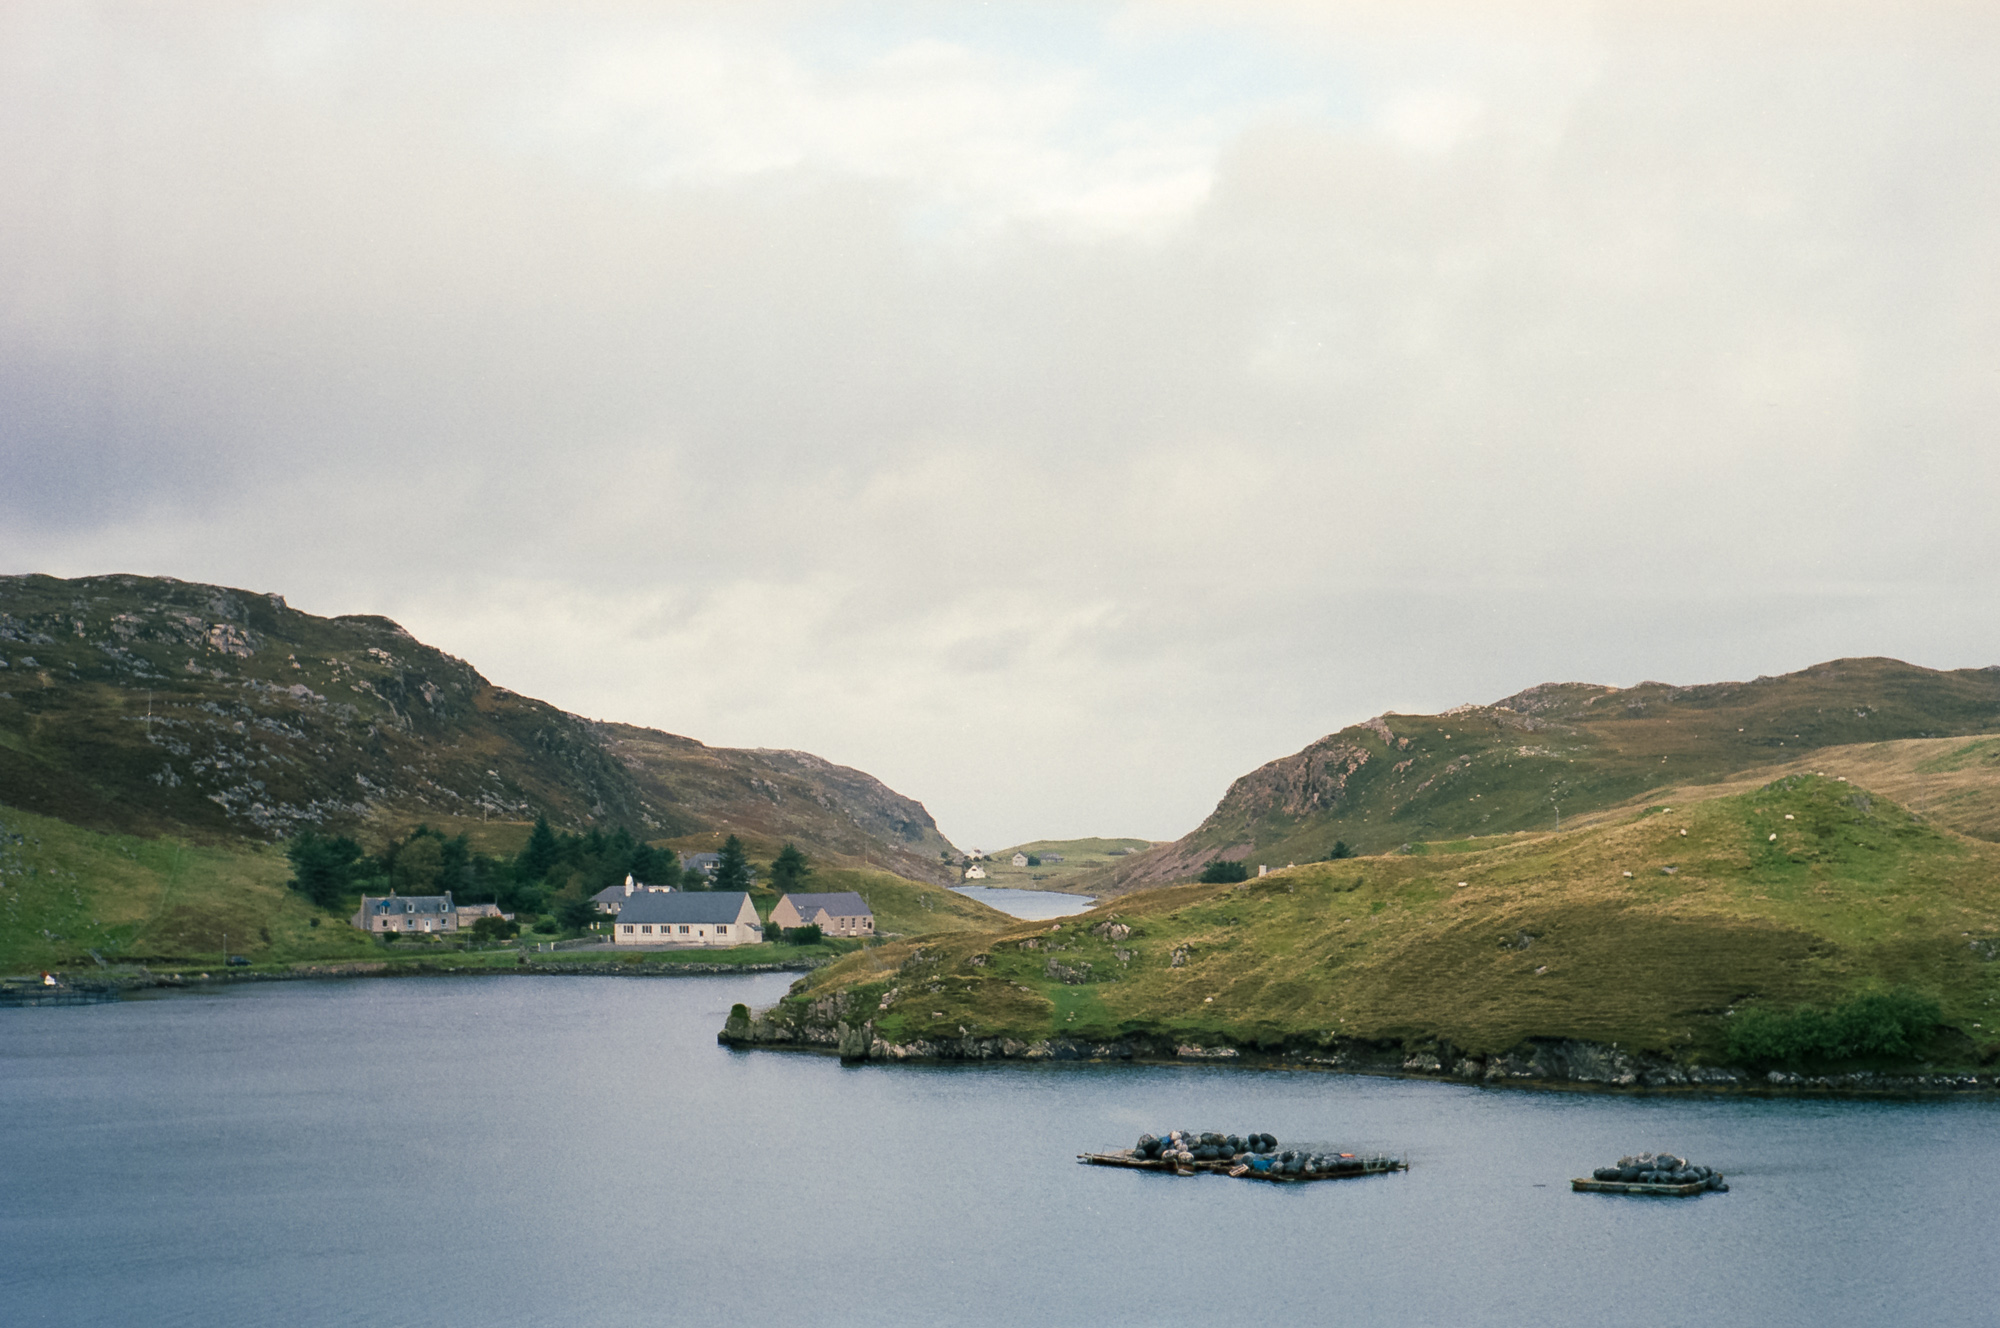 One of the photos from Scotland that led to buying a scanner. This file is scanned by myself.